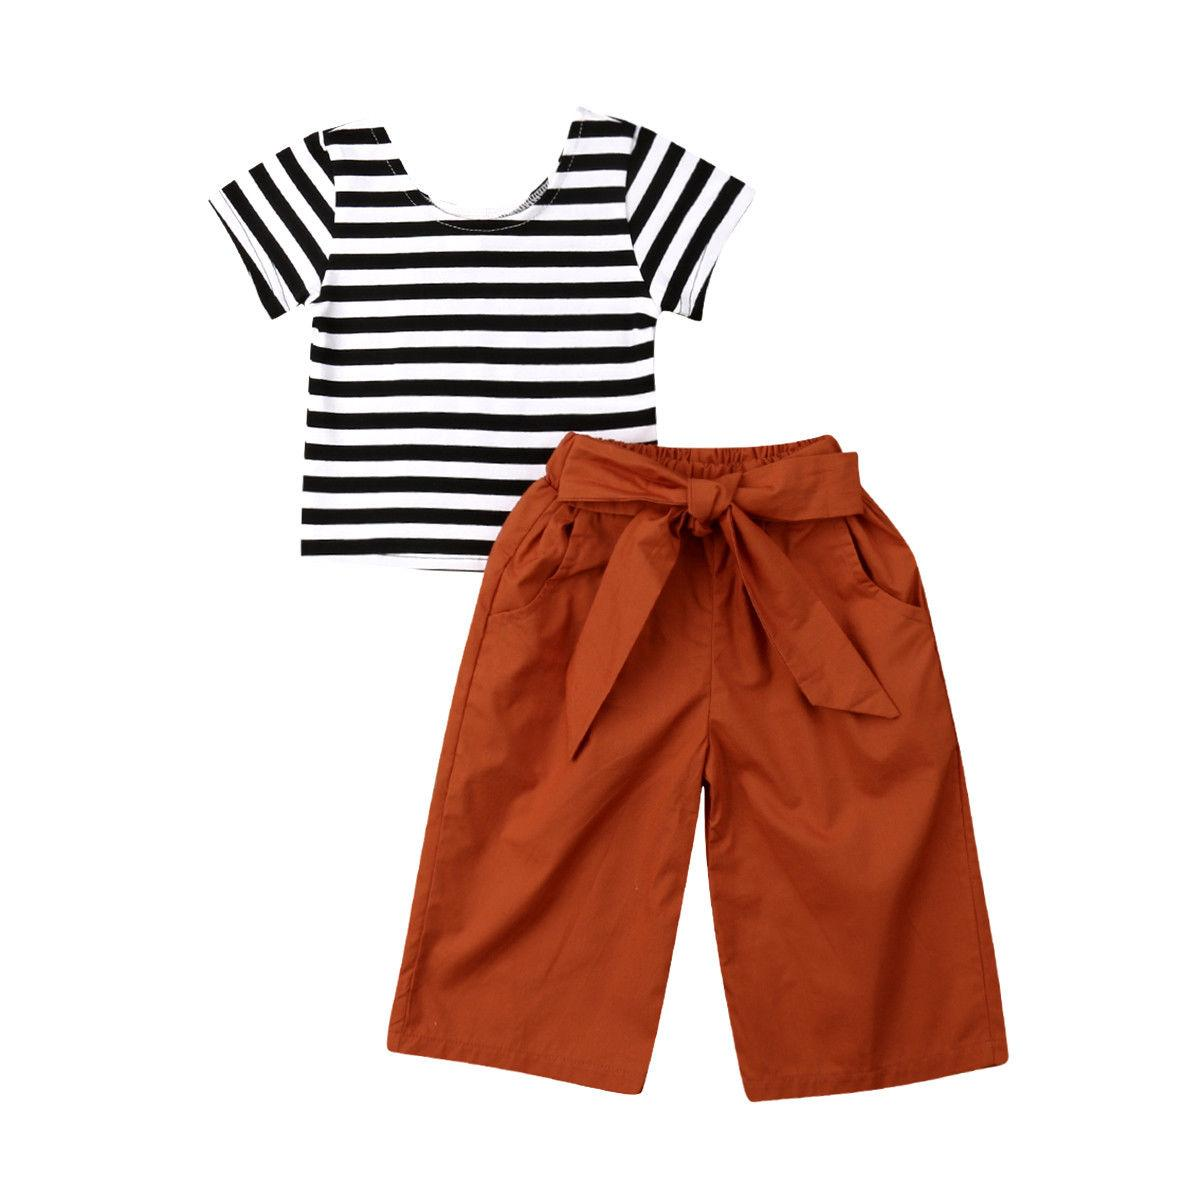 Summer Kids Girls Clothes Set Cute Baby Girls Striped Short Sleeve Tops T-shirt Bowknot Wide Leg Long Pants 2Pcs Outfits Clothes